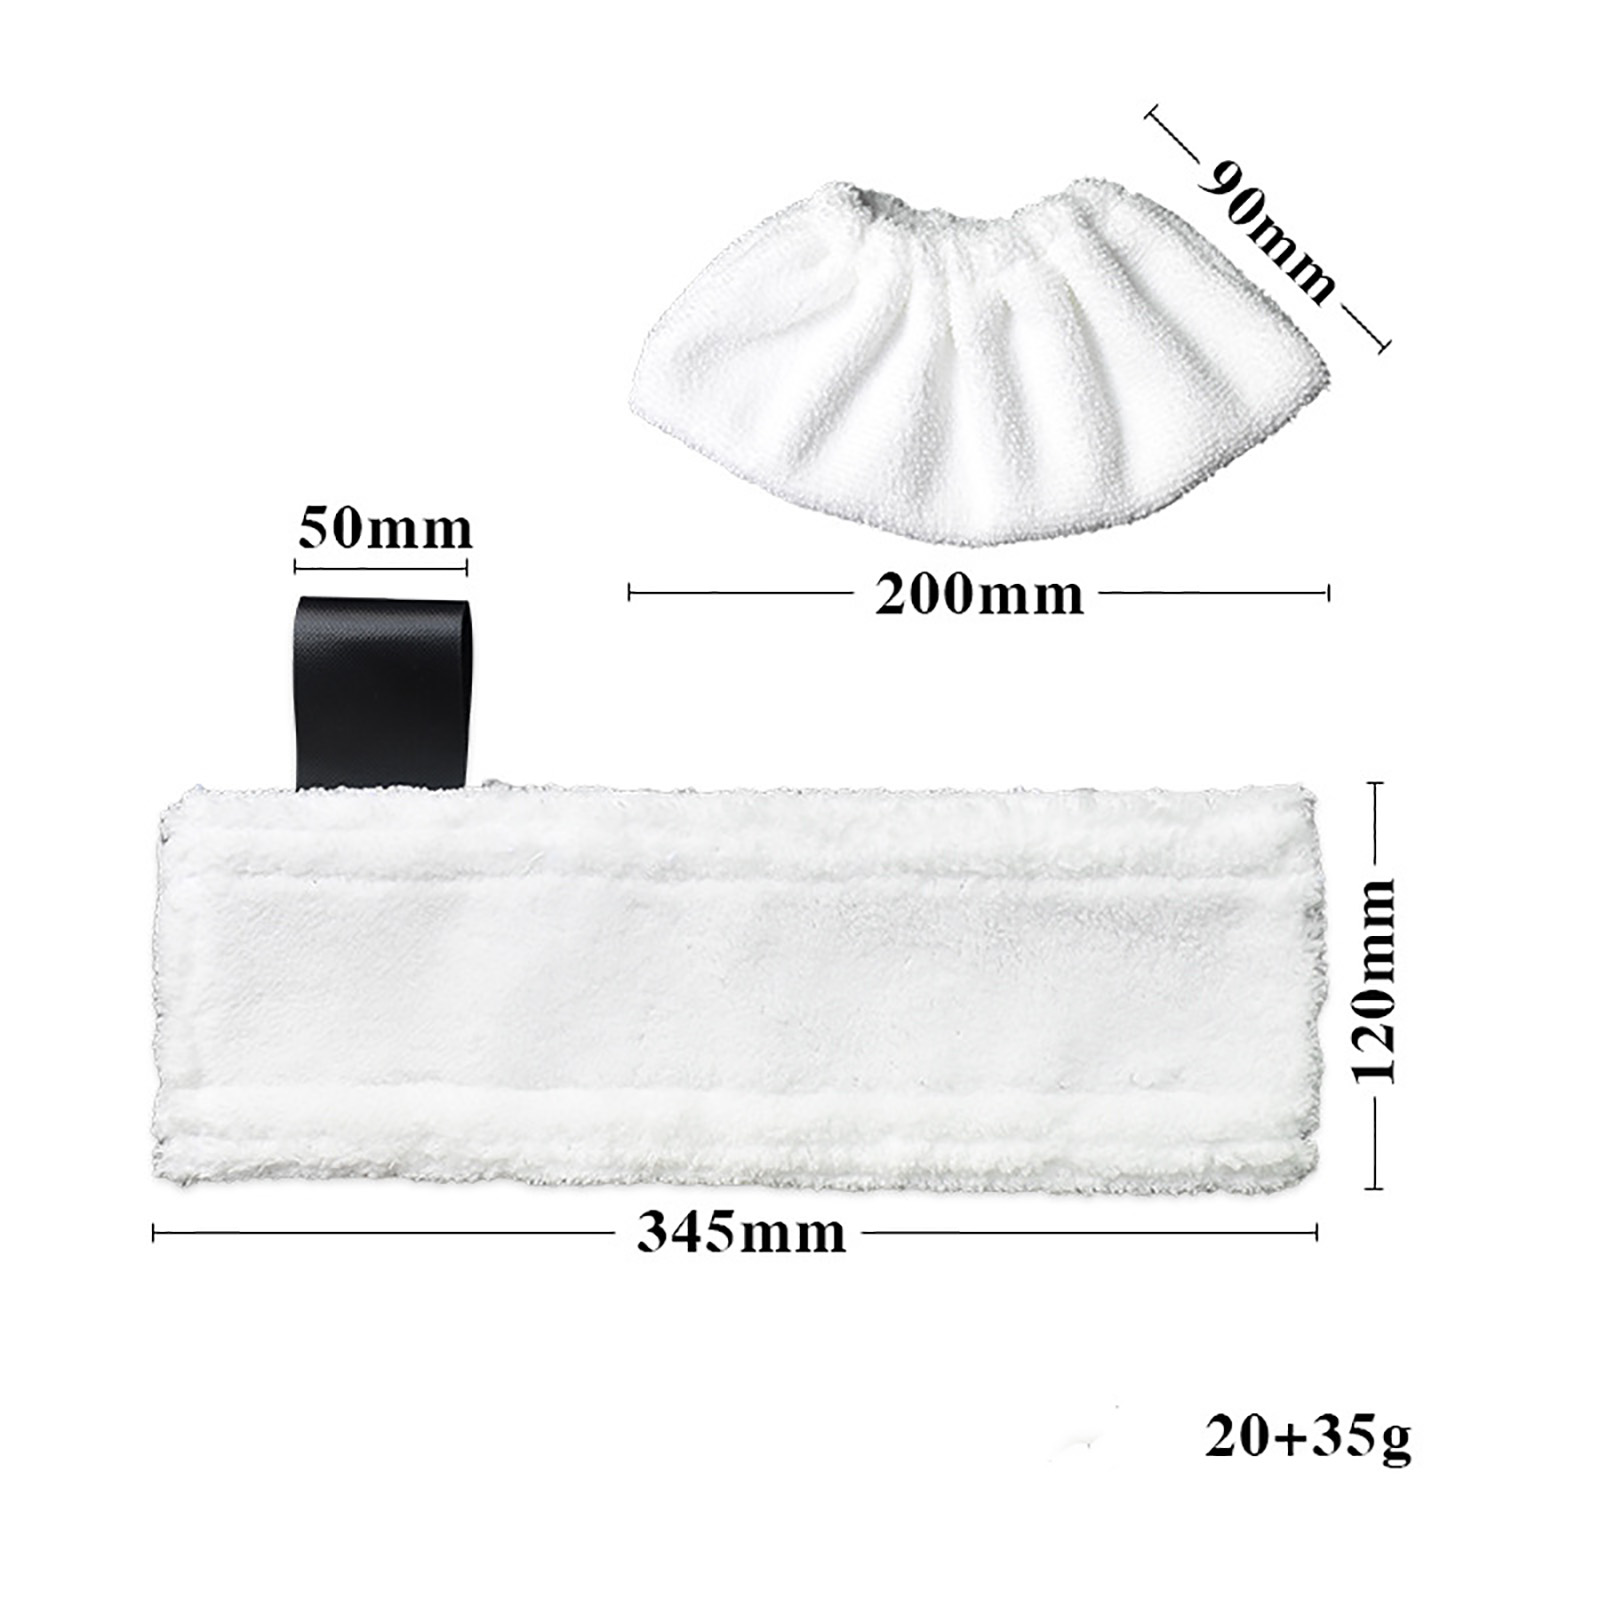 Replacement Steam Mop Cloth Cover Cleaning Pads Household Cloth Cover For Karcher SC2 SC3 SC4 SC5 Steam Mop Cleaner Parts